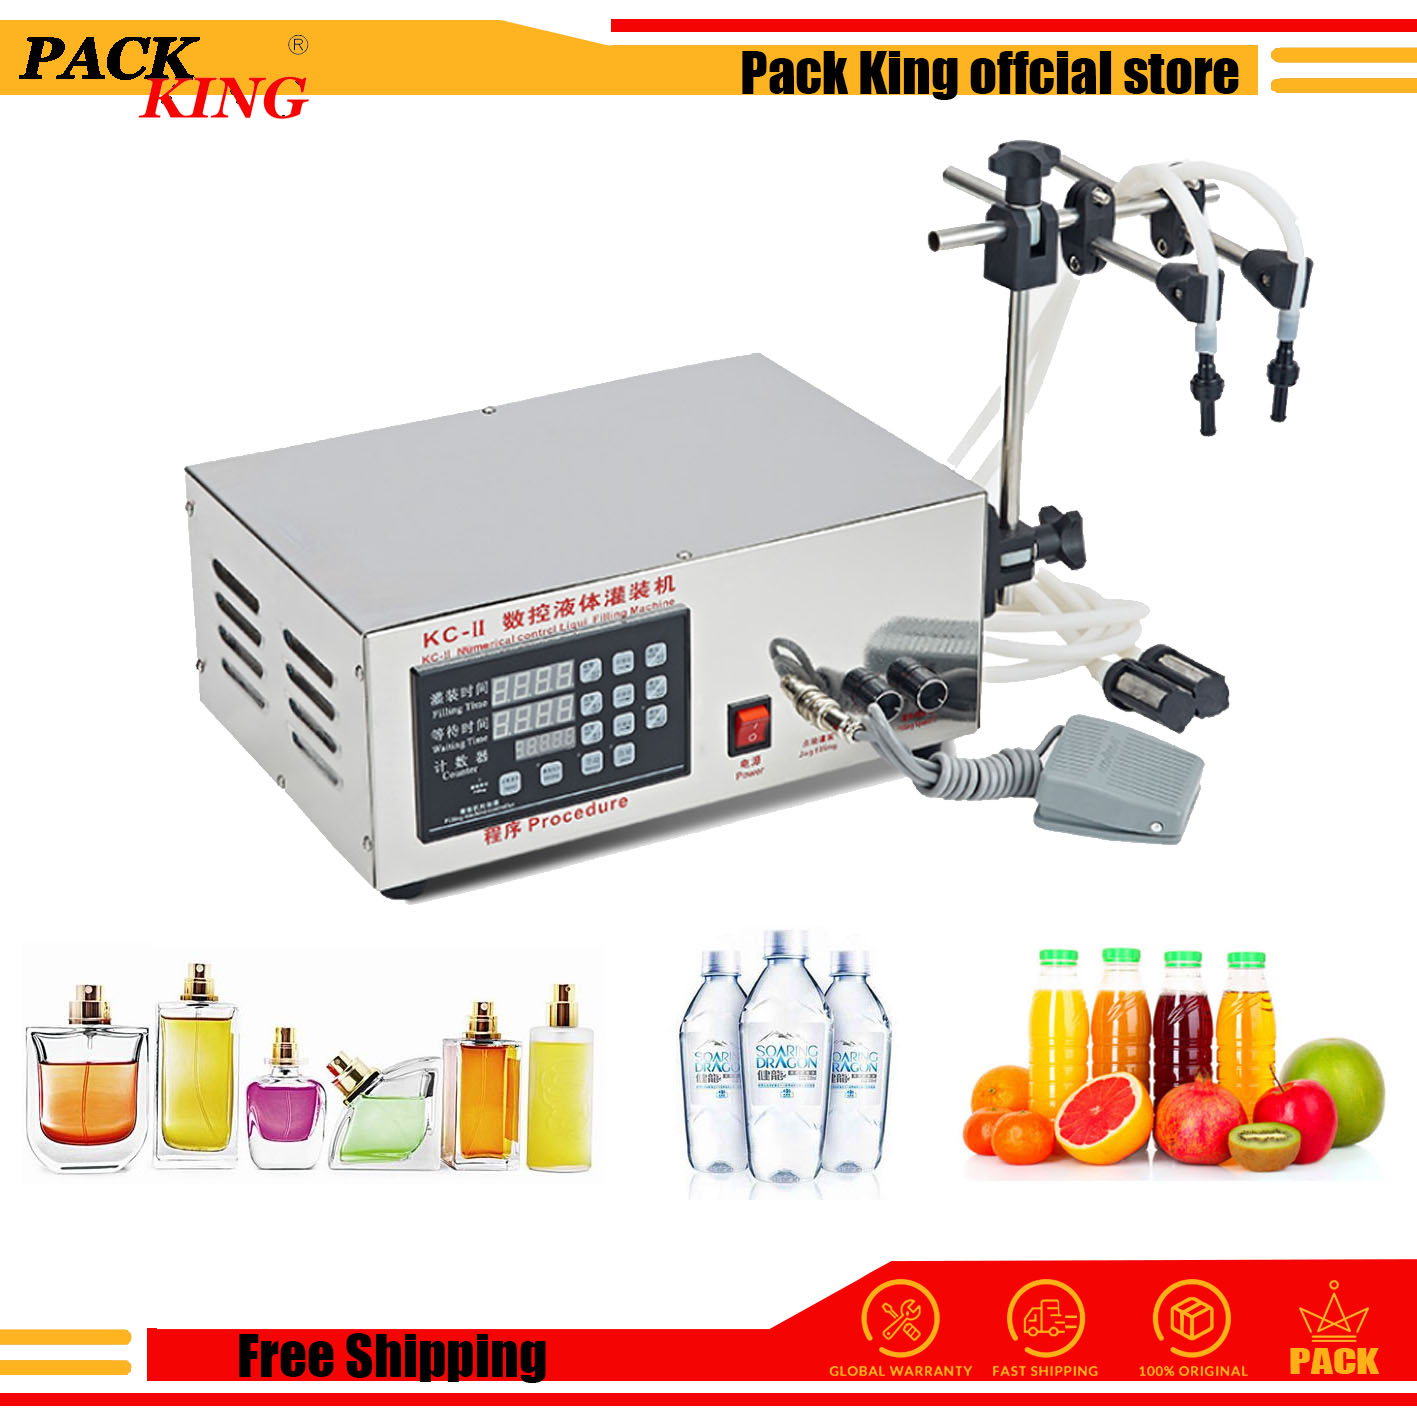 Digital Double Head Liquid Filling Machine Microcomputer Automatic Water Liquid Filler Drinks Milk Juice Liquor Free Shipping